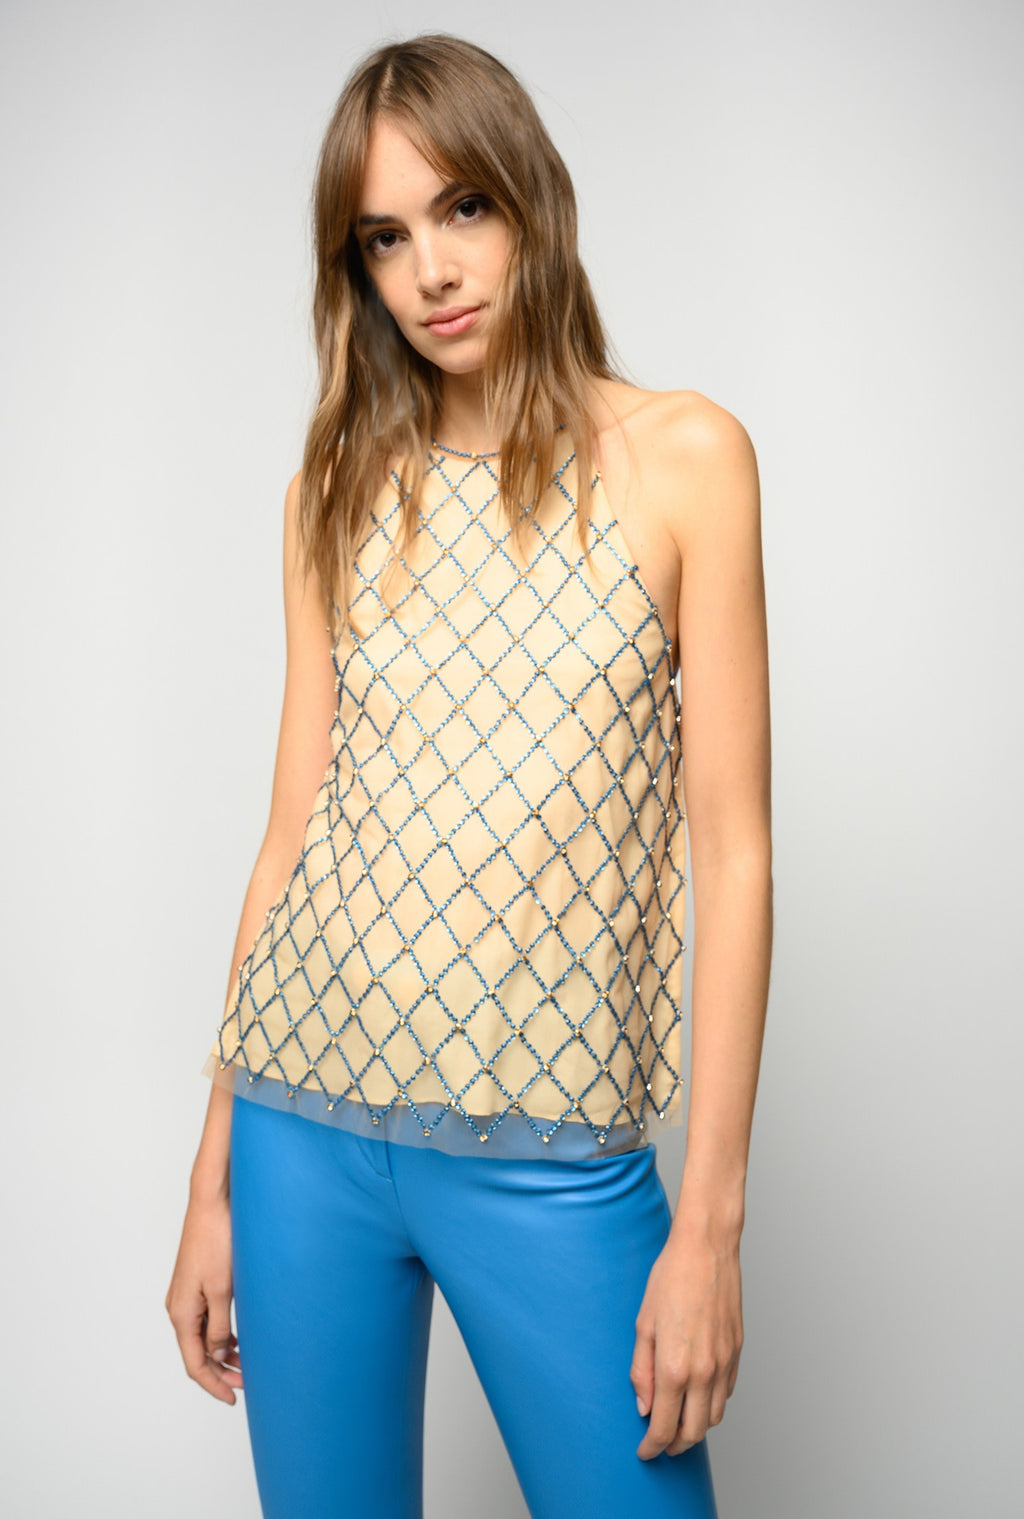 Tan/Blue Top with crystal embroidered mesh